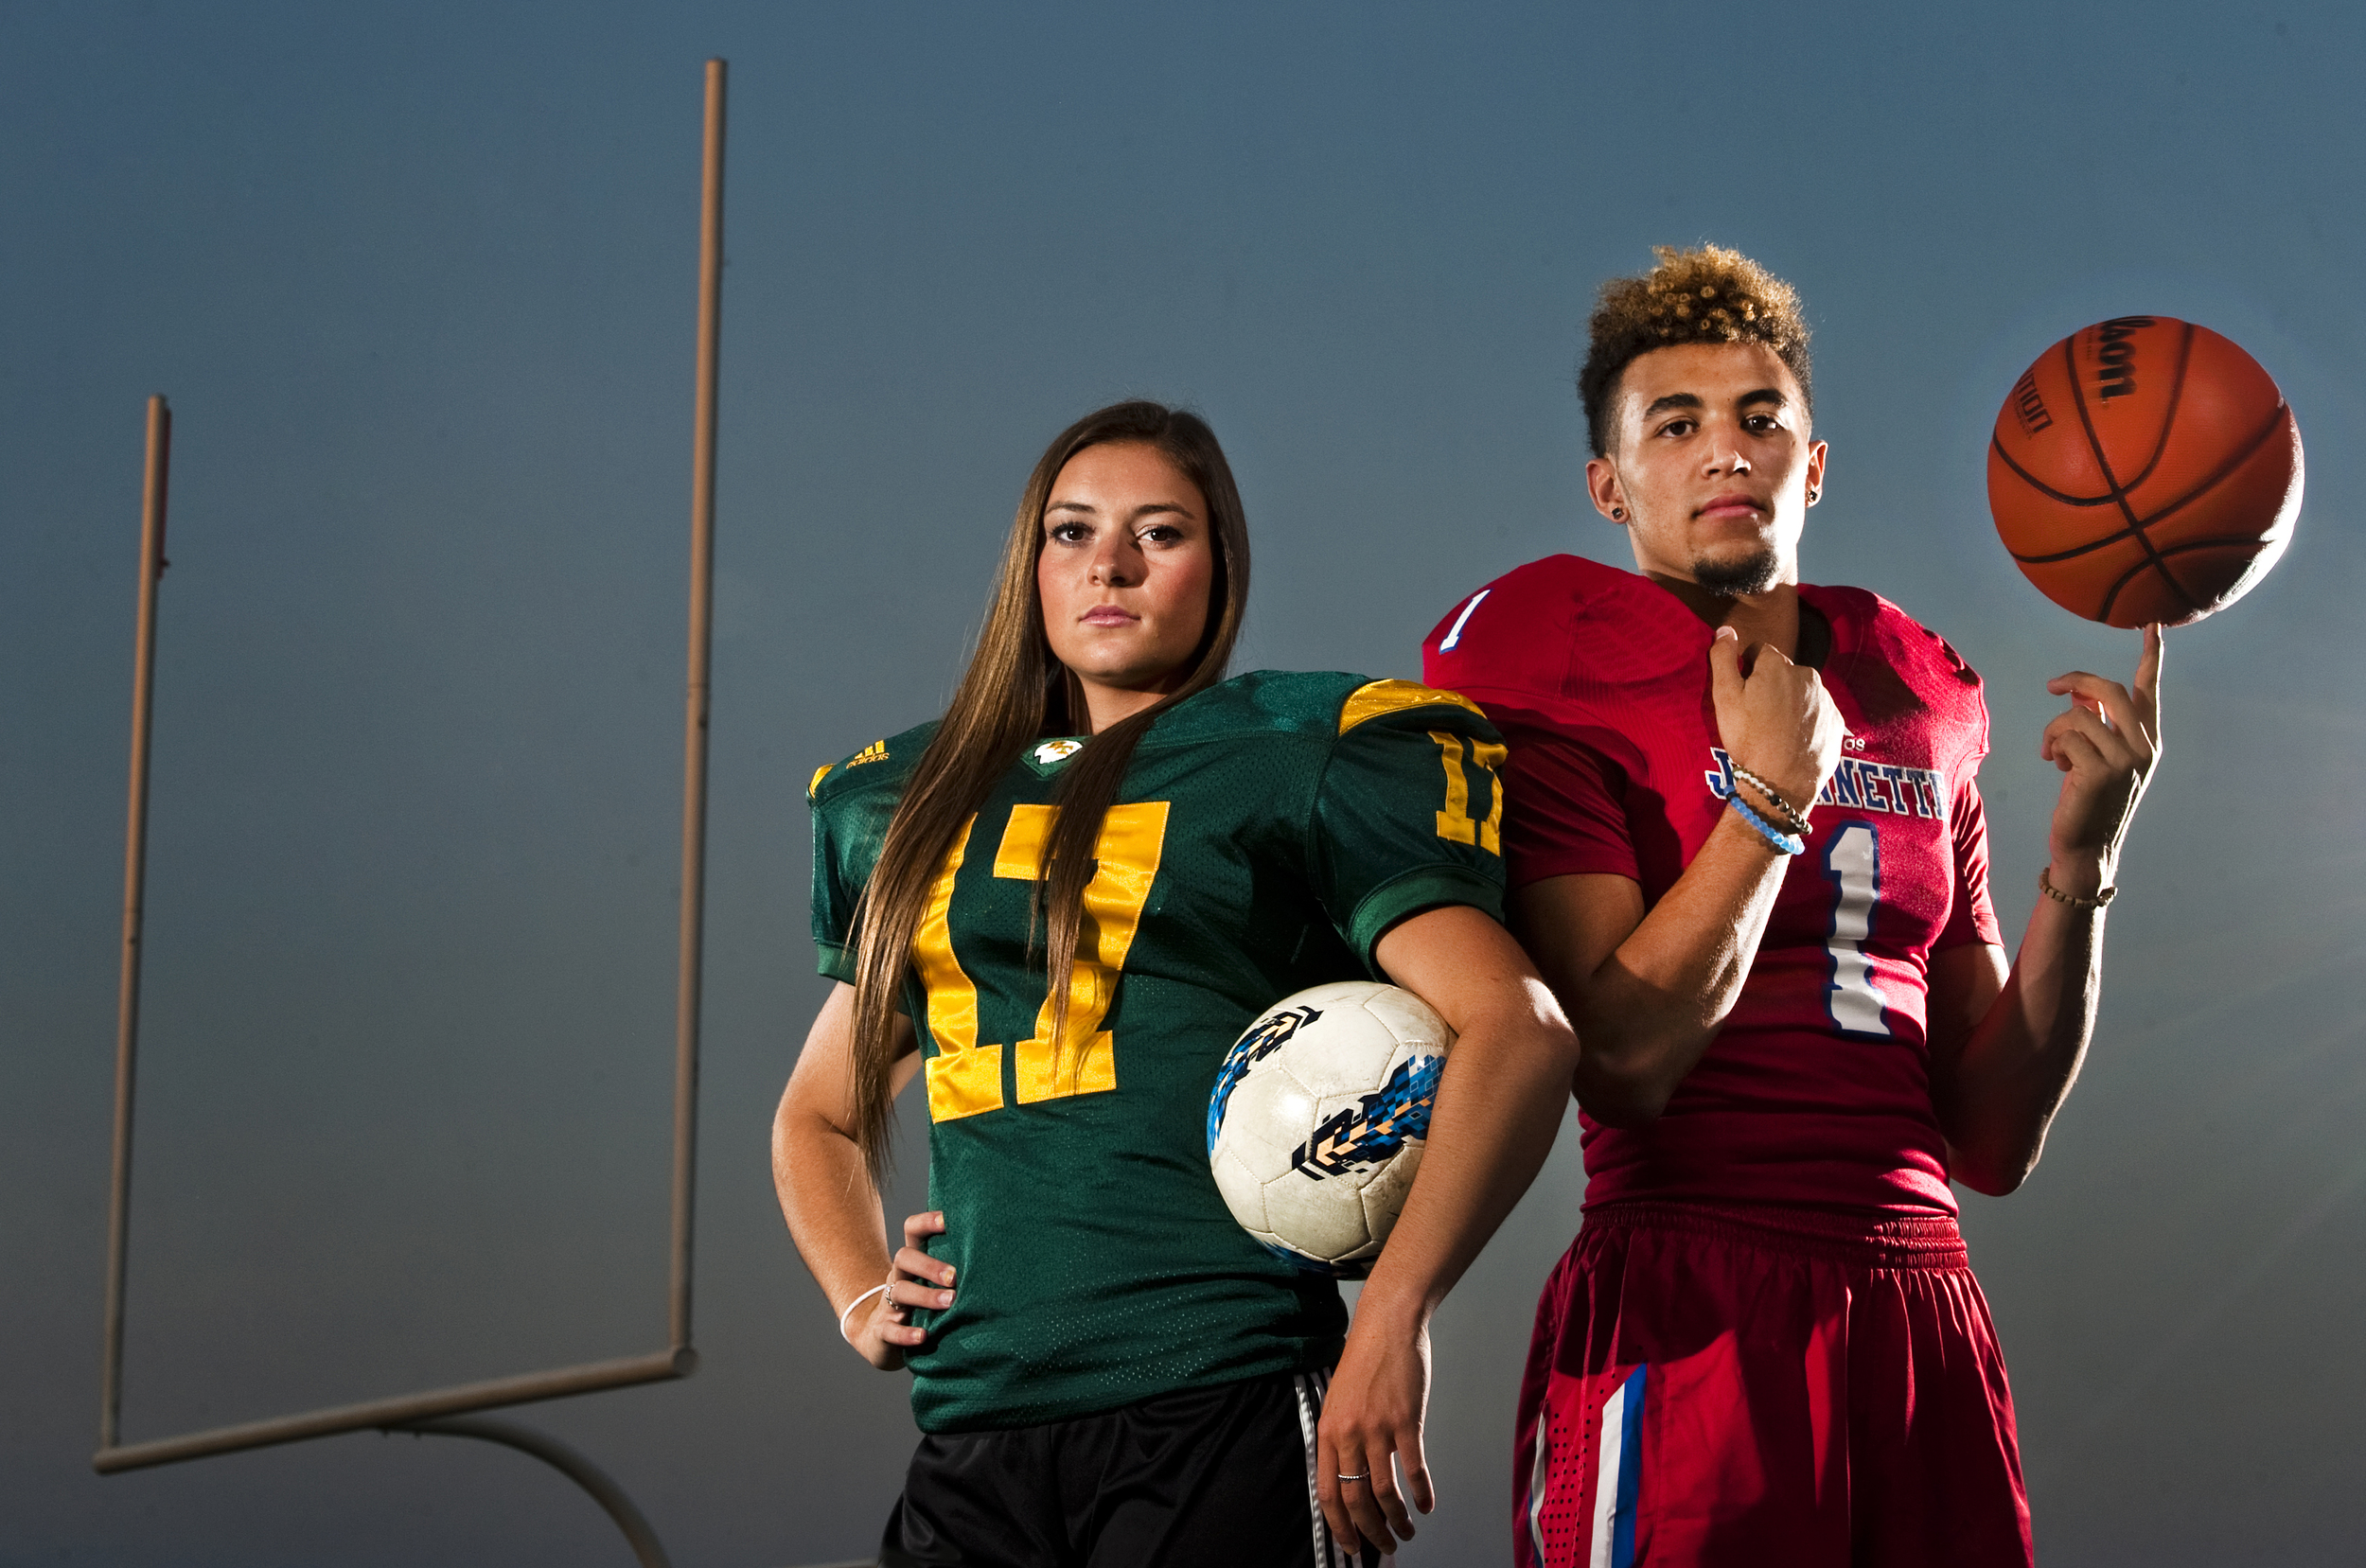 Penn-Trafford's Casey Aunkst and Jeannette's Julian Batts, the Tribune-Review's Athletes of the Year, are photographed on Wednesday, July 1, 2015 at Penn-Trafford High School. Aunkst, who will be playing soccer at Duquesne University, holds the school record for football field goals, basketball all-time assists and was named all-state for soccer. Batts, who will be playing basketball at a junior college in Connecticut, is the school's second all-time leading scorer and a star quarterback.